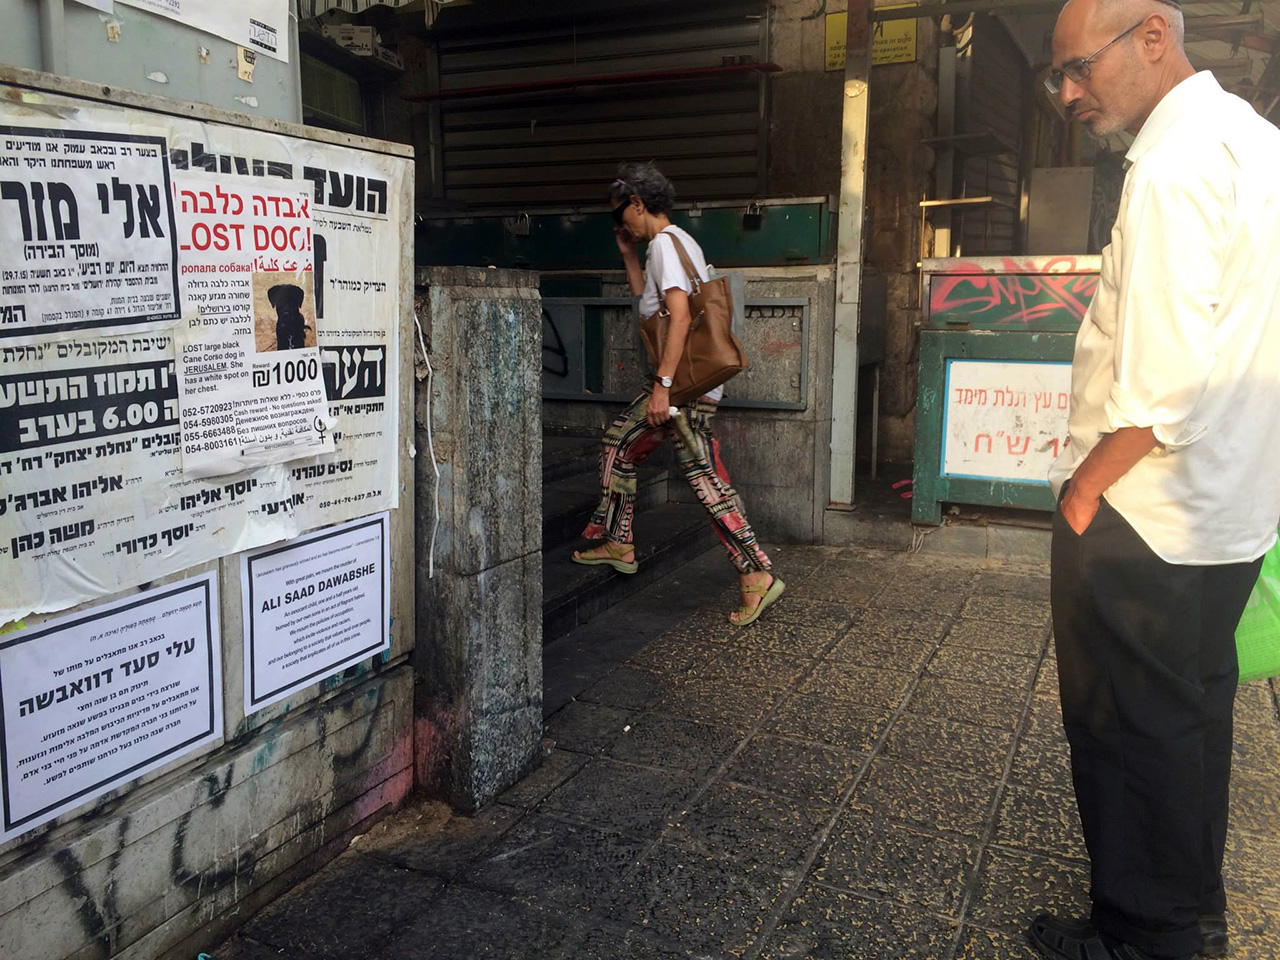 A man in Jerusalem reading one of the posters.